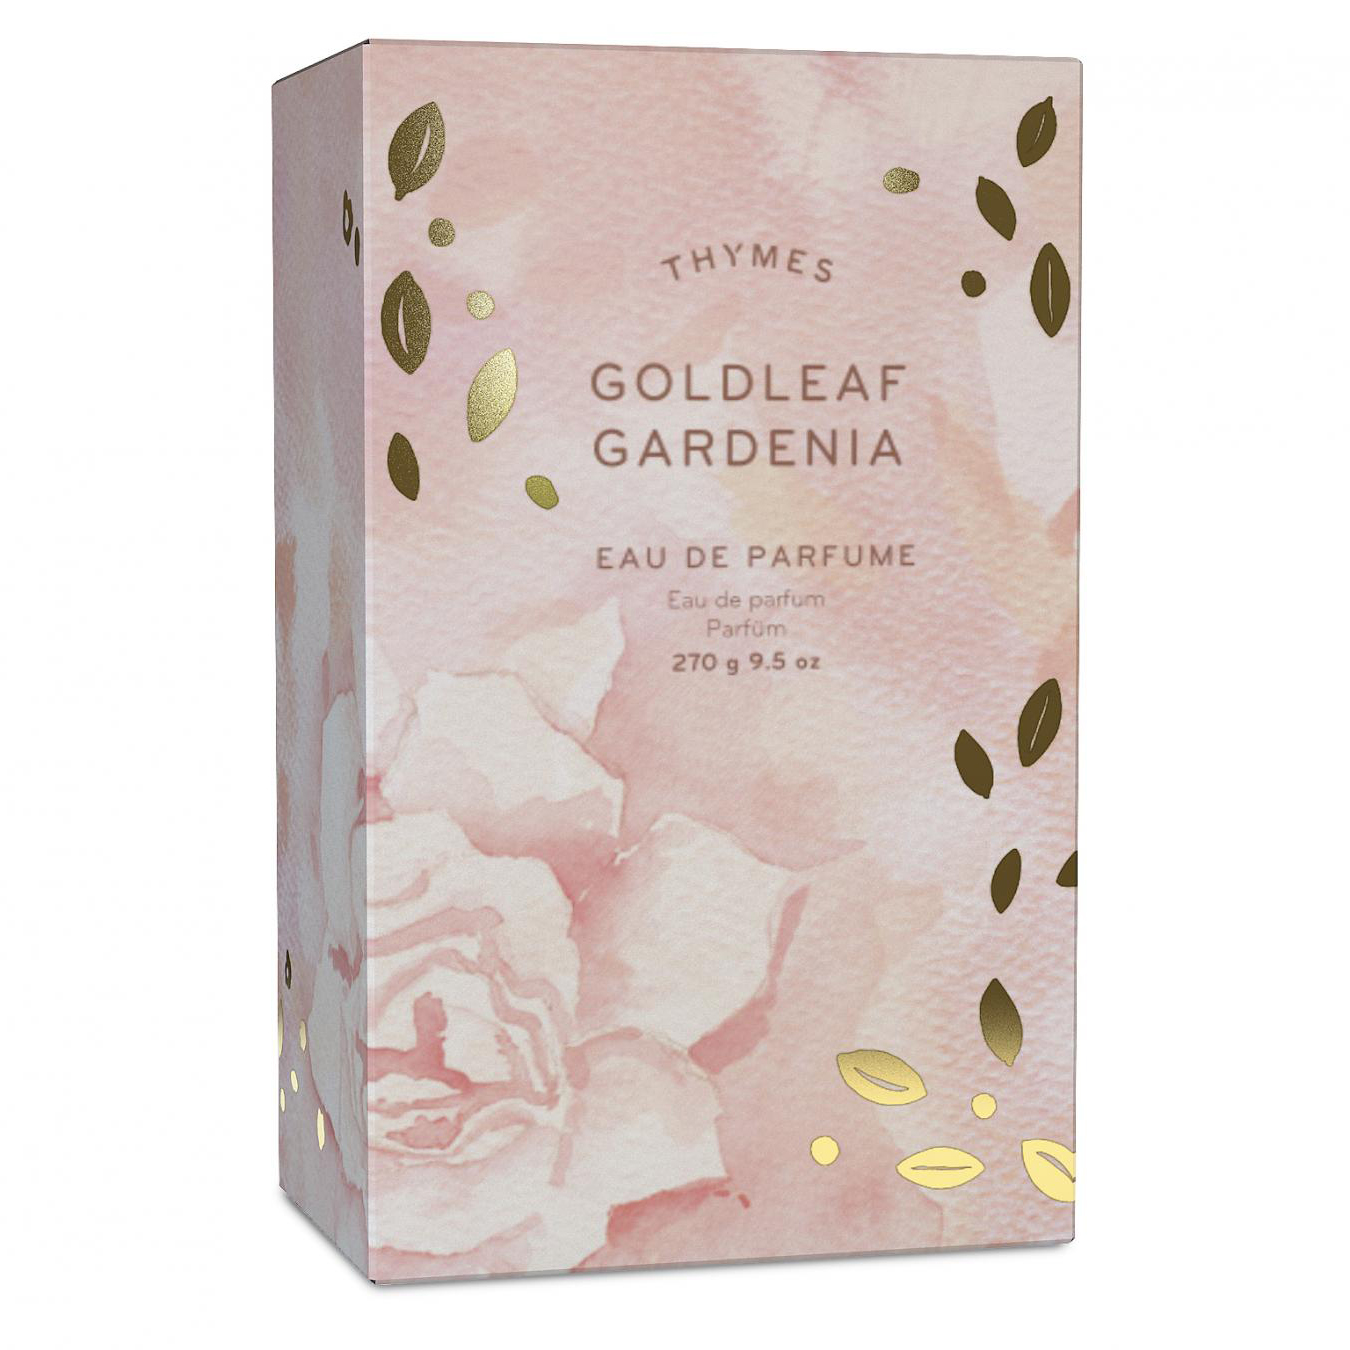 A 3D version of a Thymes GoldLeaf Gardenia packaging mockup.